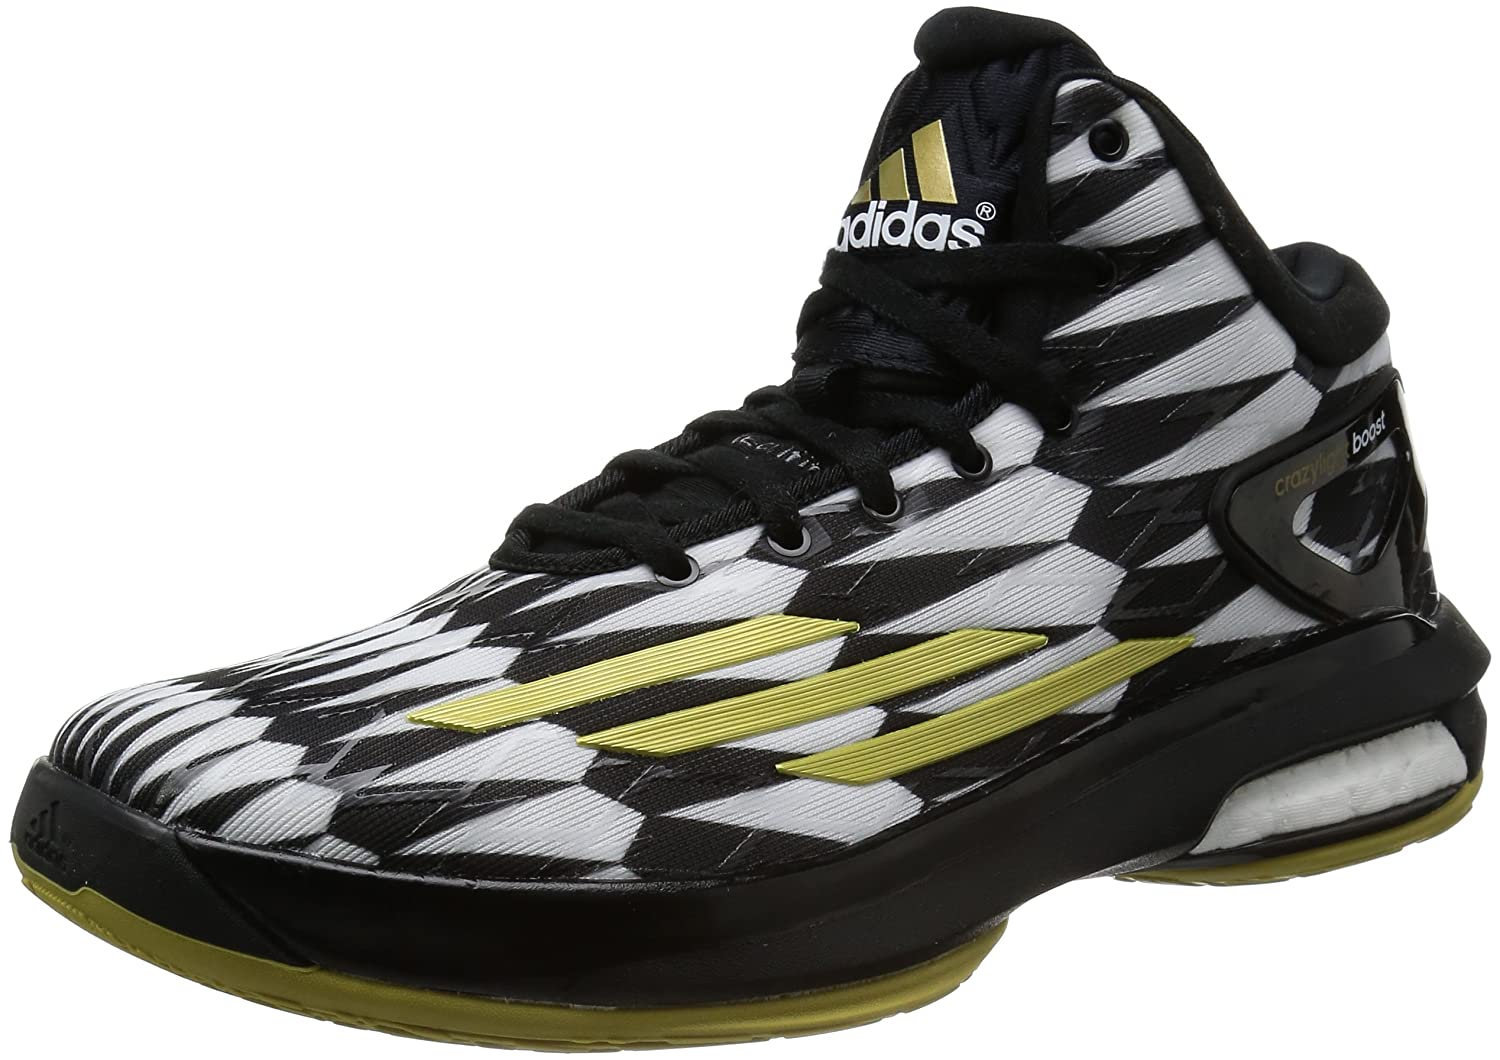 ADIDAS PERFORMANCE Crazy Light Boost D73978